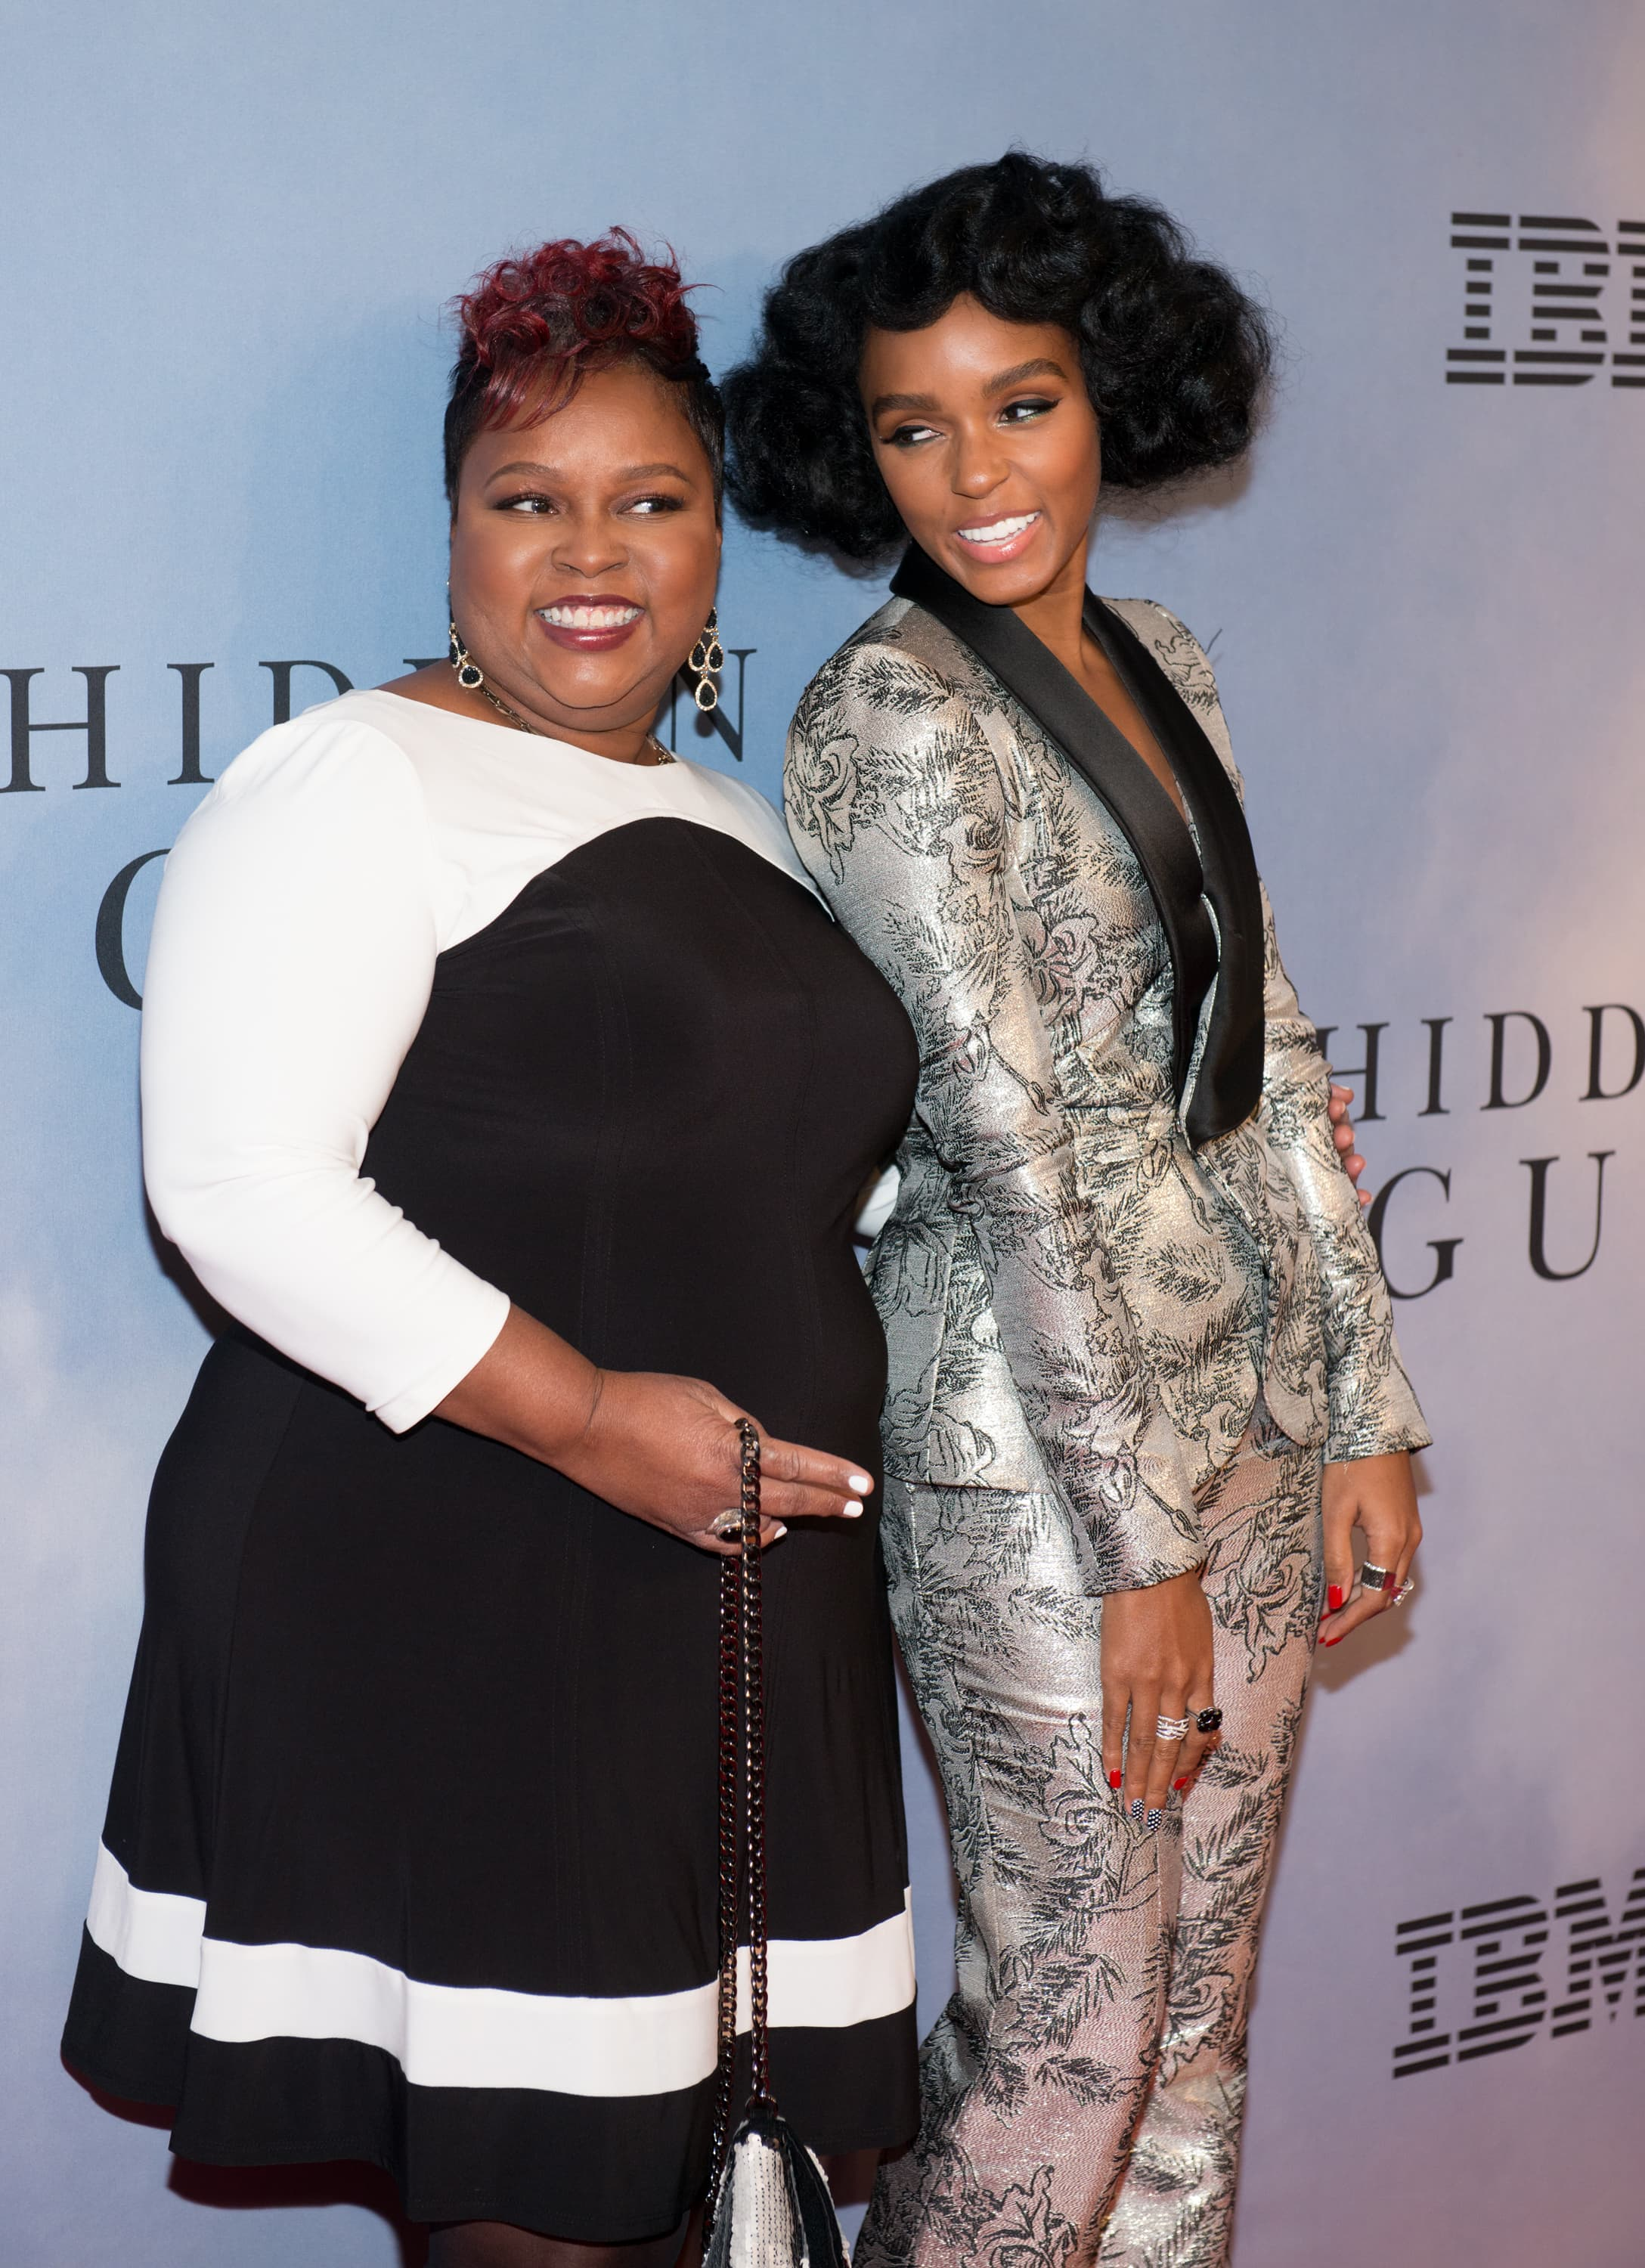 Janelle Monae grew up working class and her parents encouraged her to